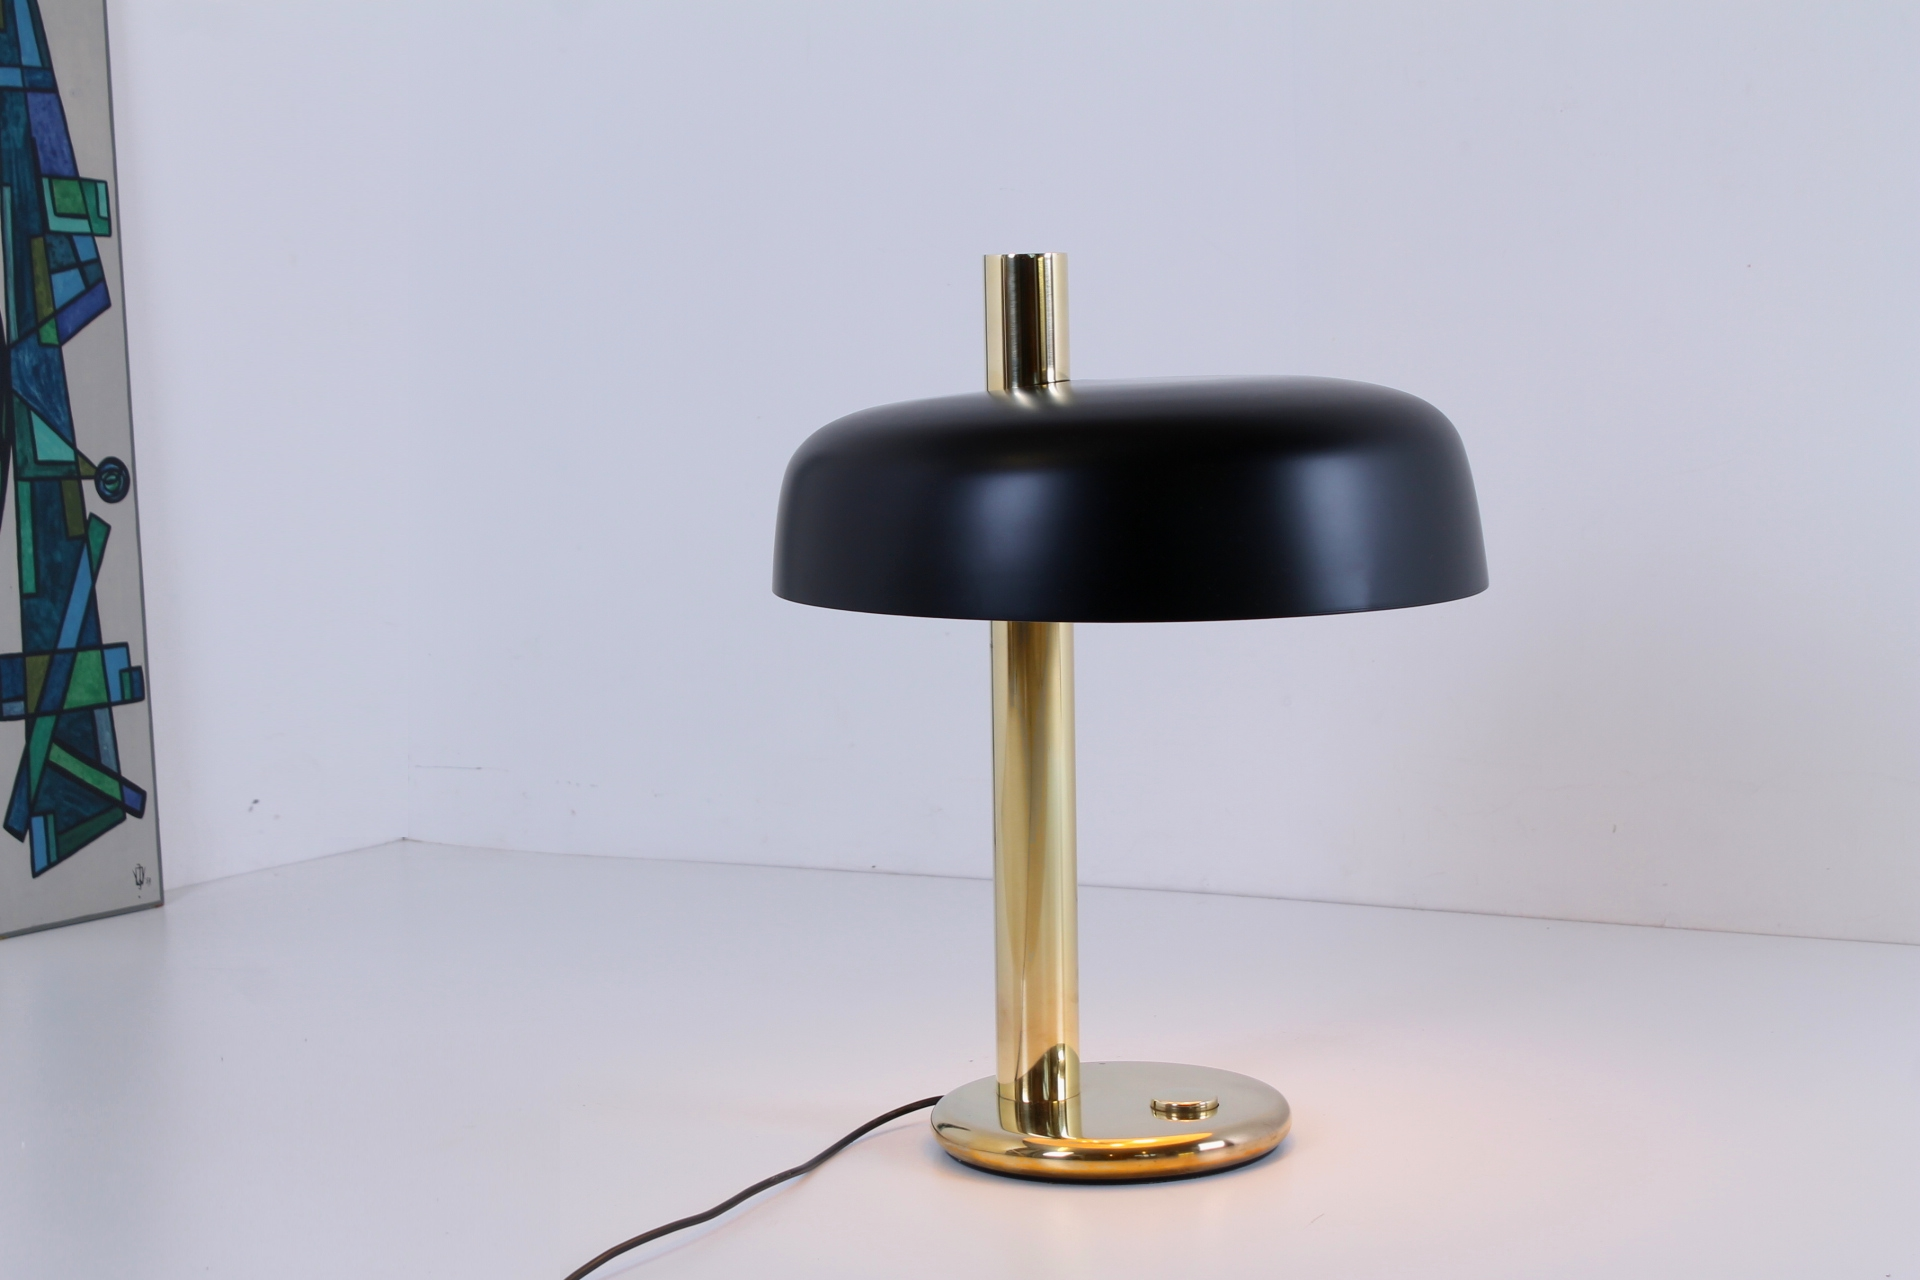 hillebrand-egon-large-brass-black-mushroom-desk-table-light-copper-modernist-german-design-vintage-lighting-classic-luxury-glamorous-4